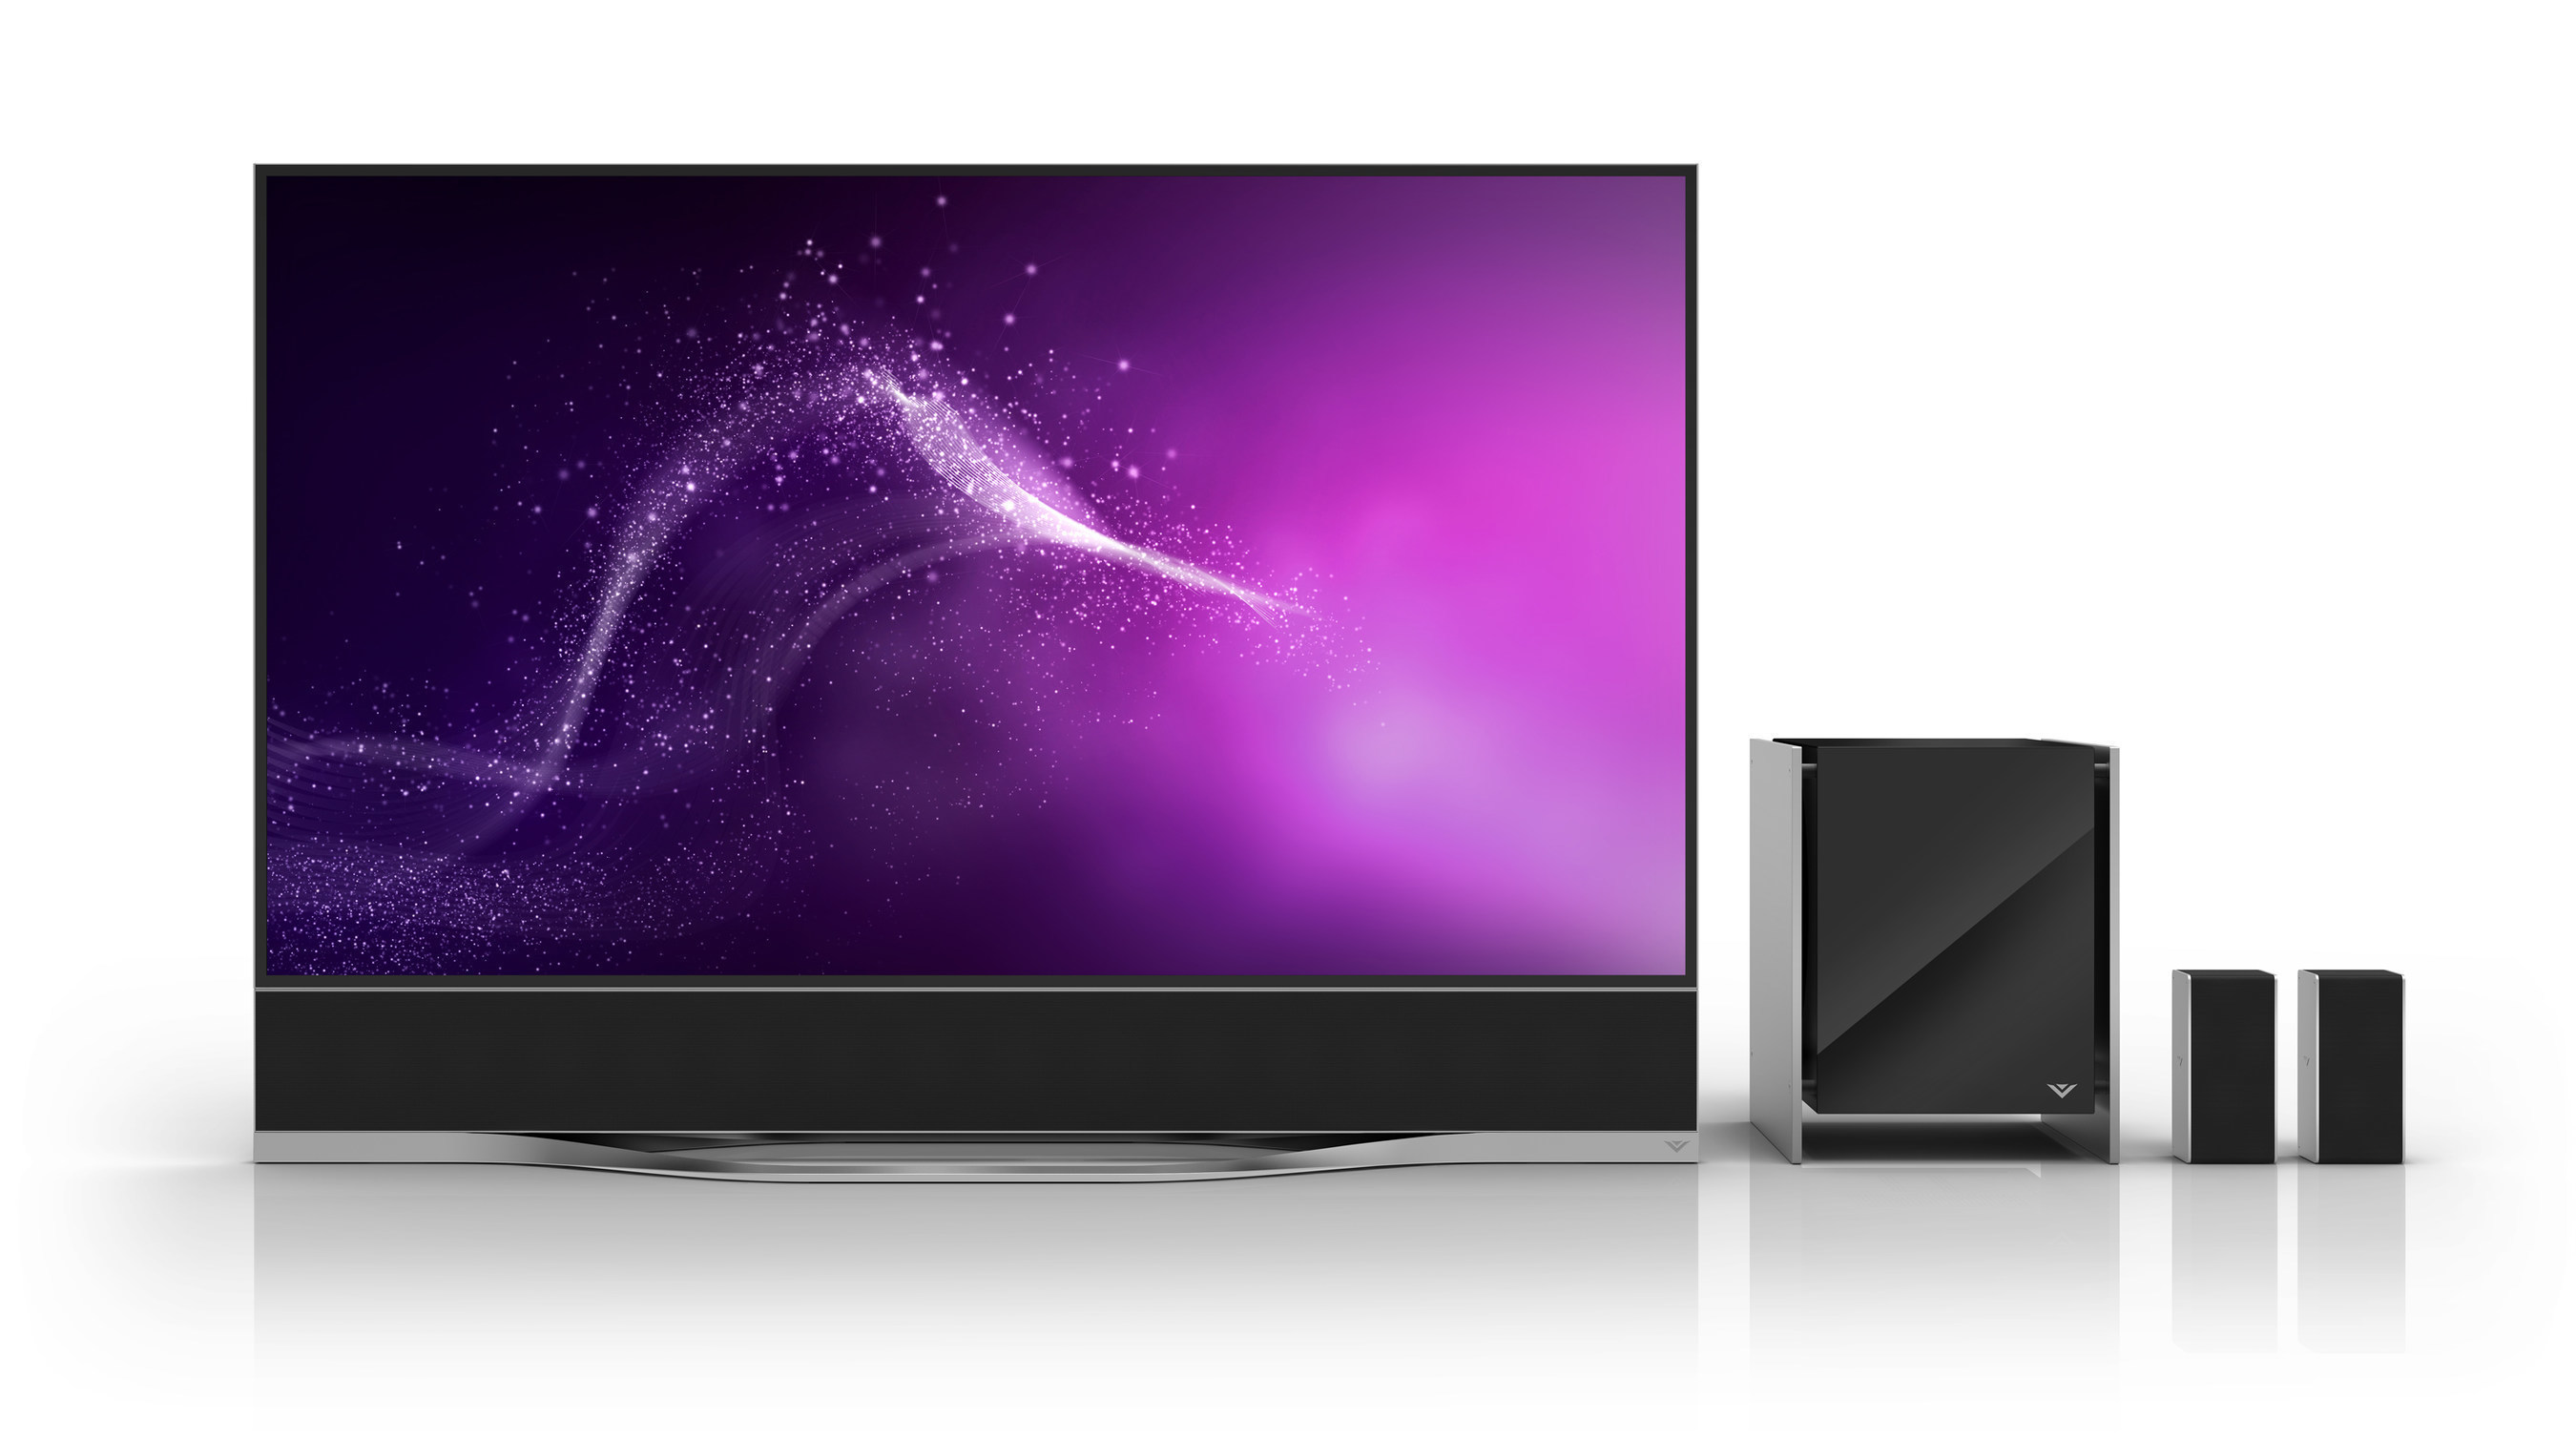 First-Ever High Dynamic Range-Enabled Ultra HD TV Supporting Dolby Vision(TM) Delivers An Unprecedented 384 Active LED Zones(TM), Ultra-Color Spectrum, Access to 4K Ultra HD Dolby Vision Titles via VUDU and An Integrated 5.1 Sound Bar System, Culminating in the Most Captivating Entertainment Experience Possible